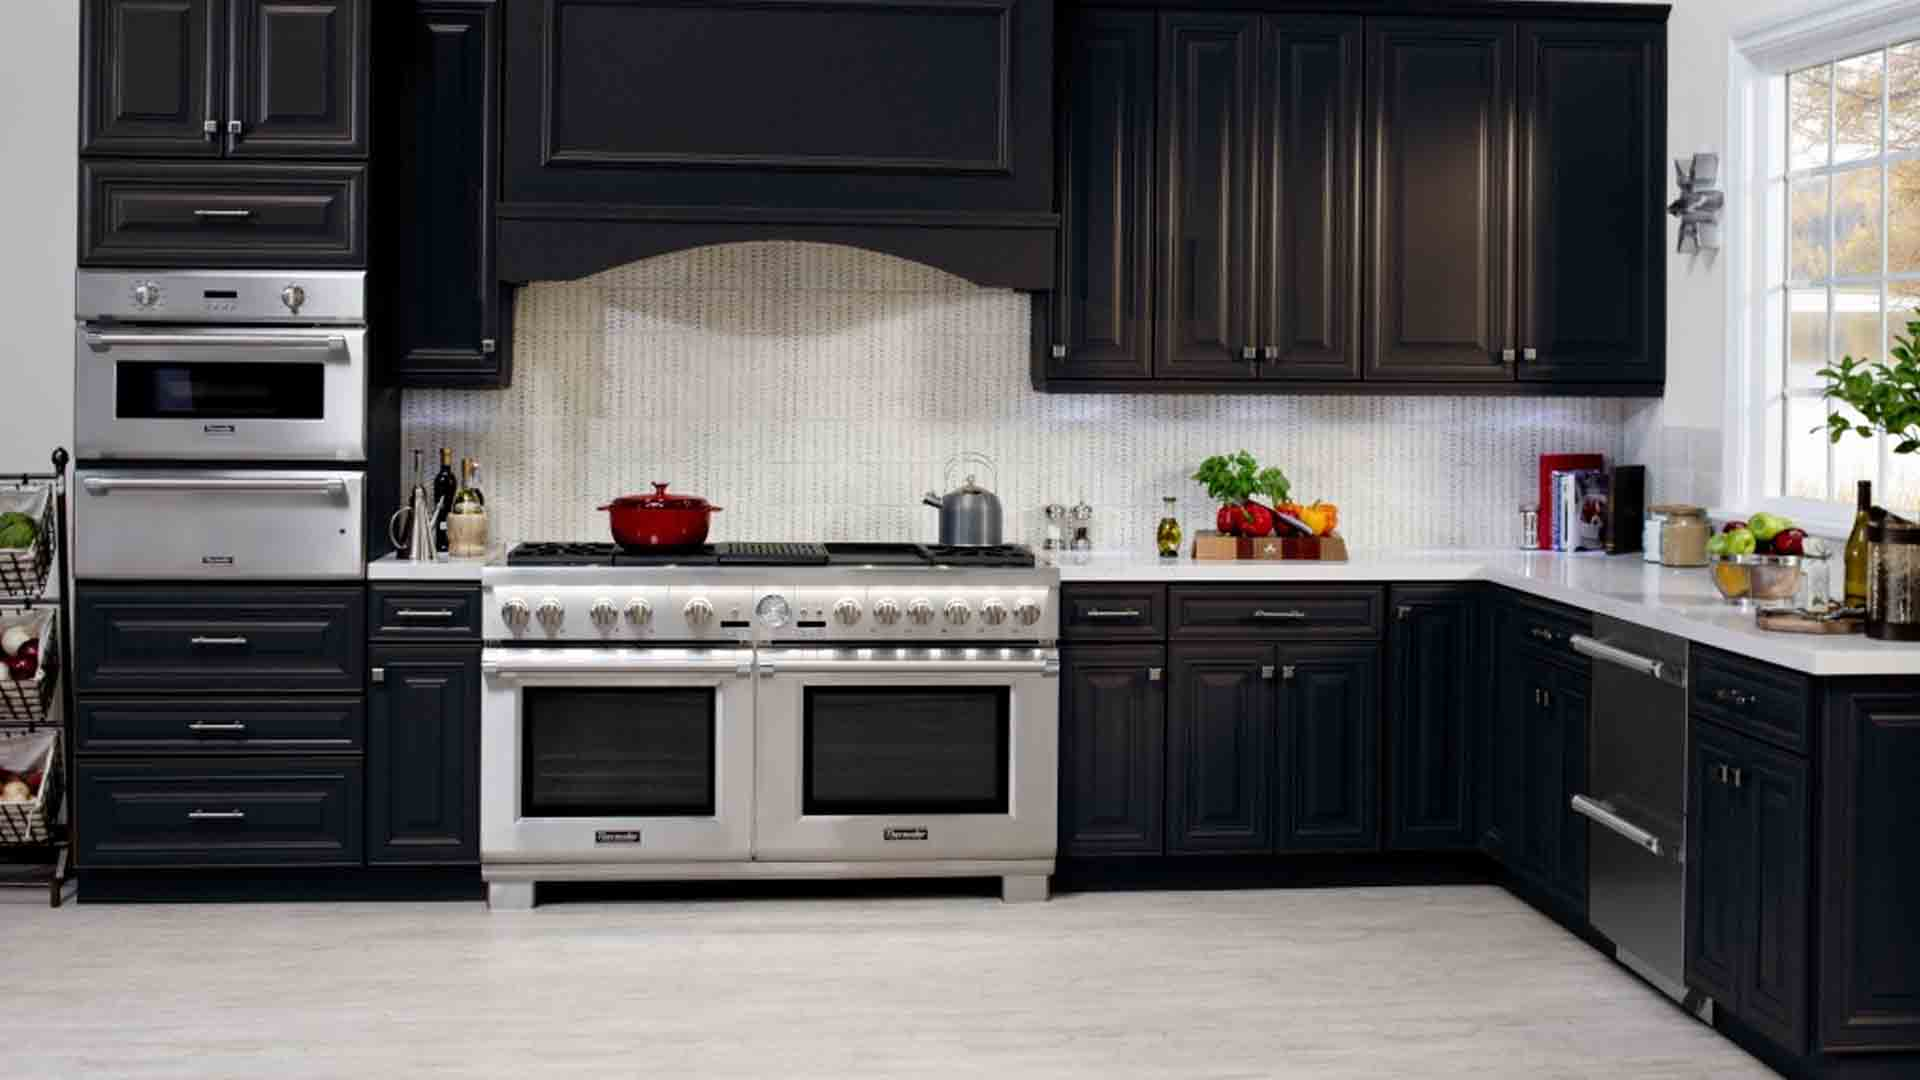 Thermador Authorized Appliance Service | Thermador Appliance Repair Pros